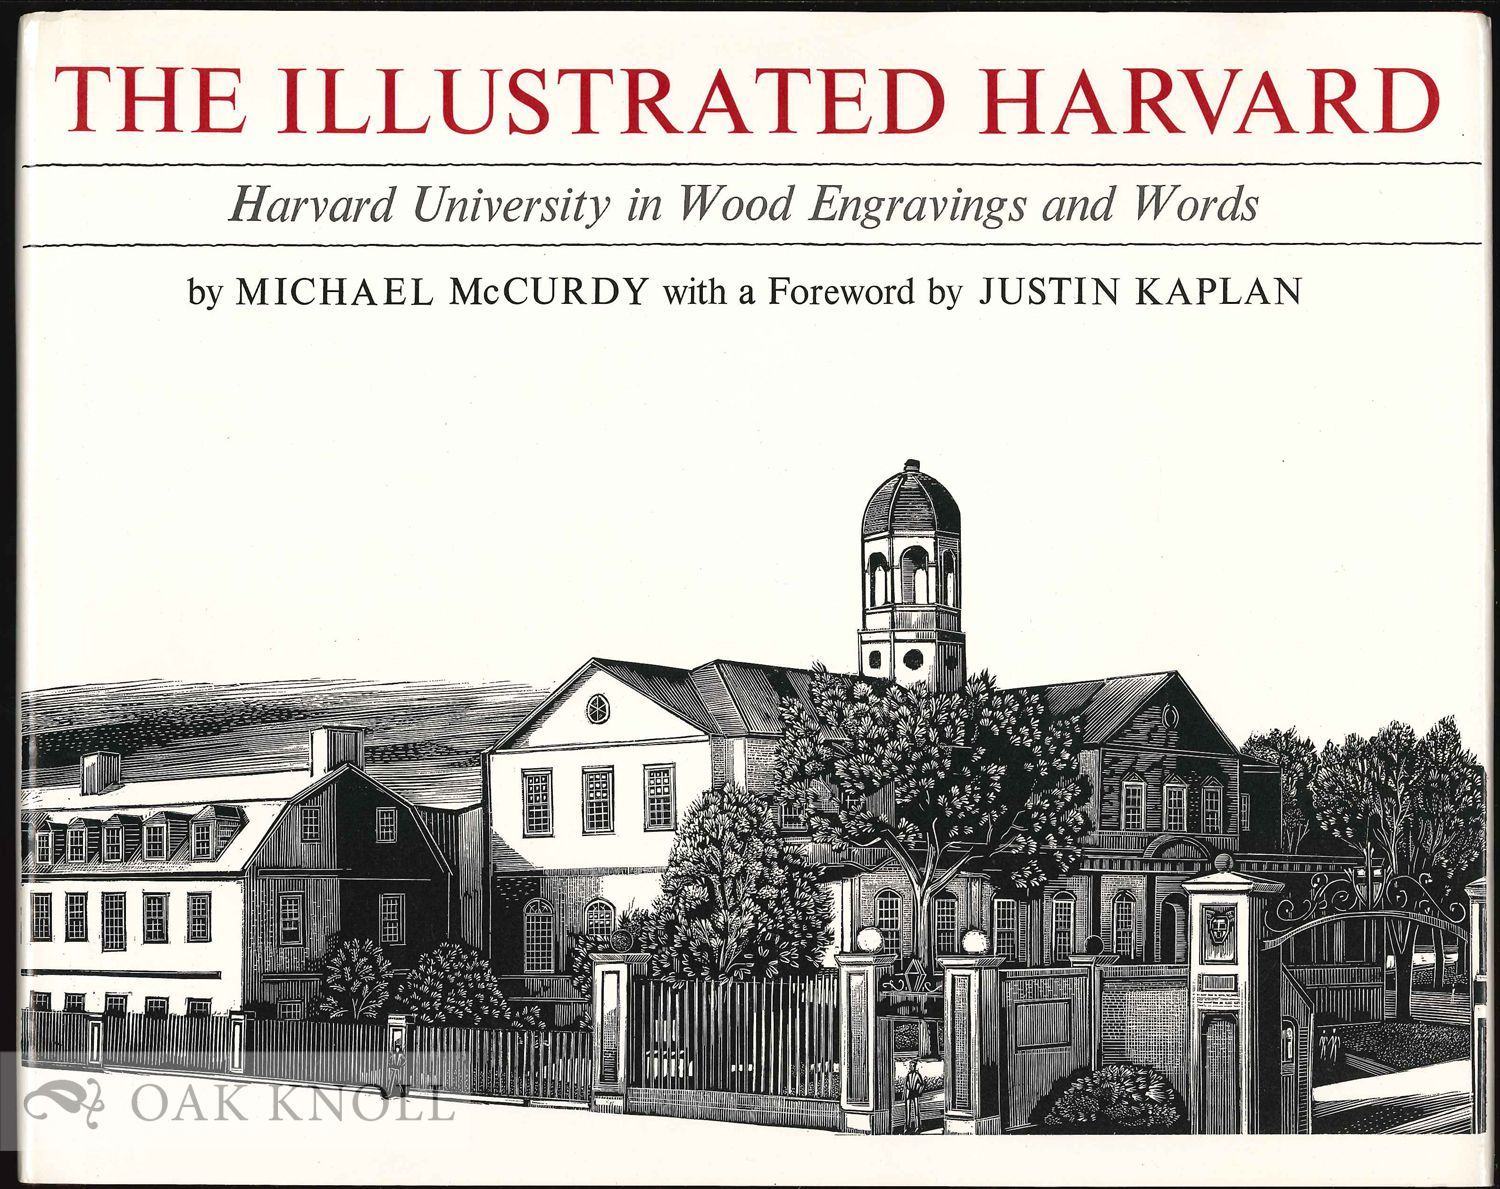 THE ILLUSTRATED HARVARD, HARVARD UNIVERSITY IN WOOD ENGRAVINGS AND WORDS by  Michael McCurdy on Oak Knoll